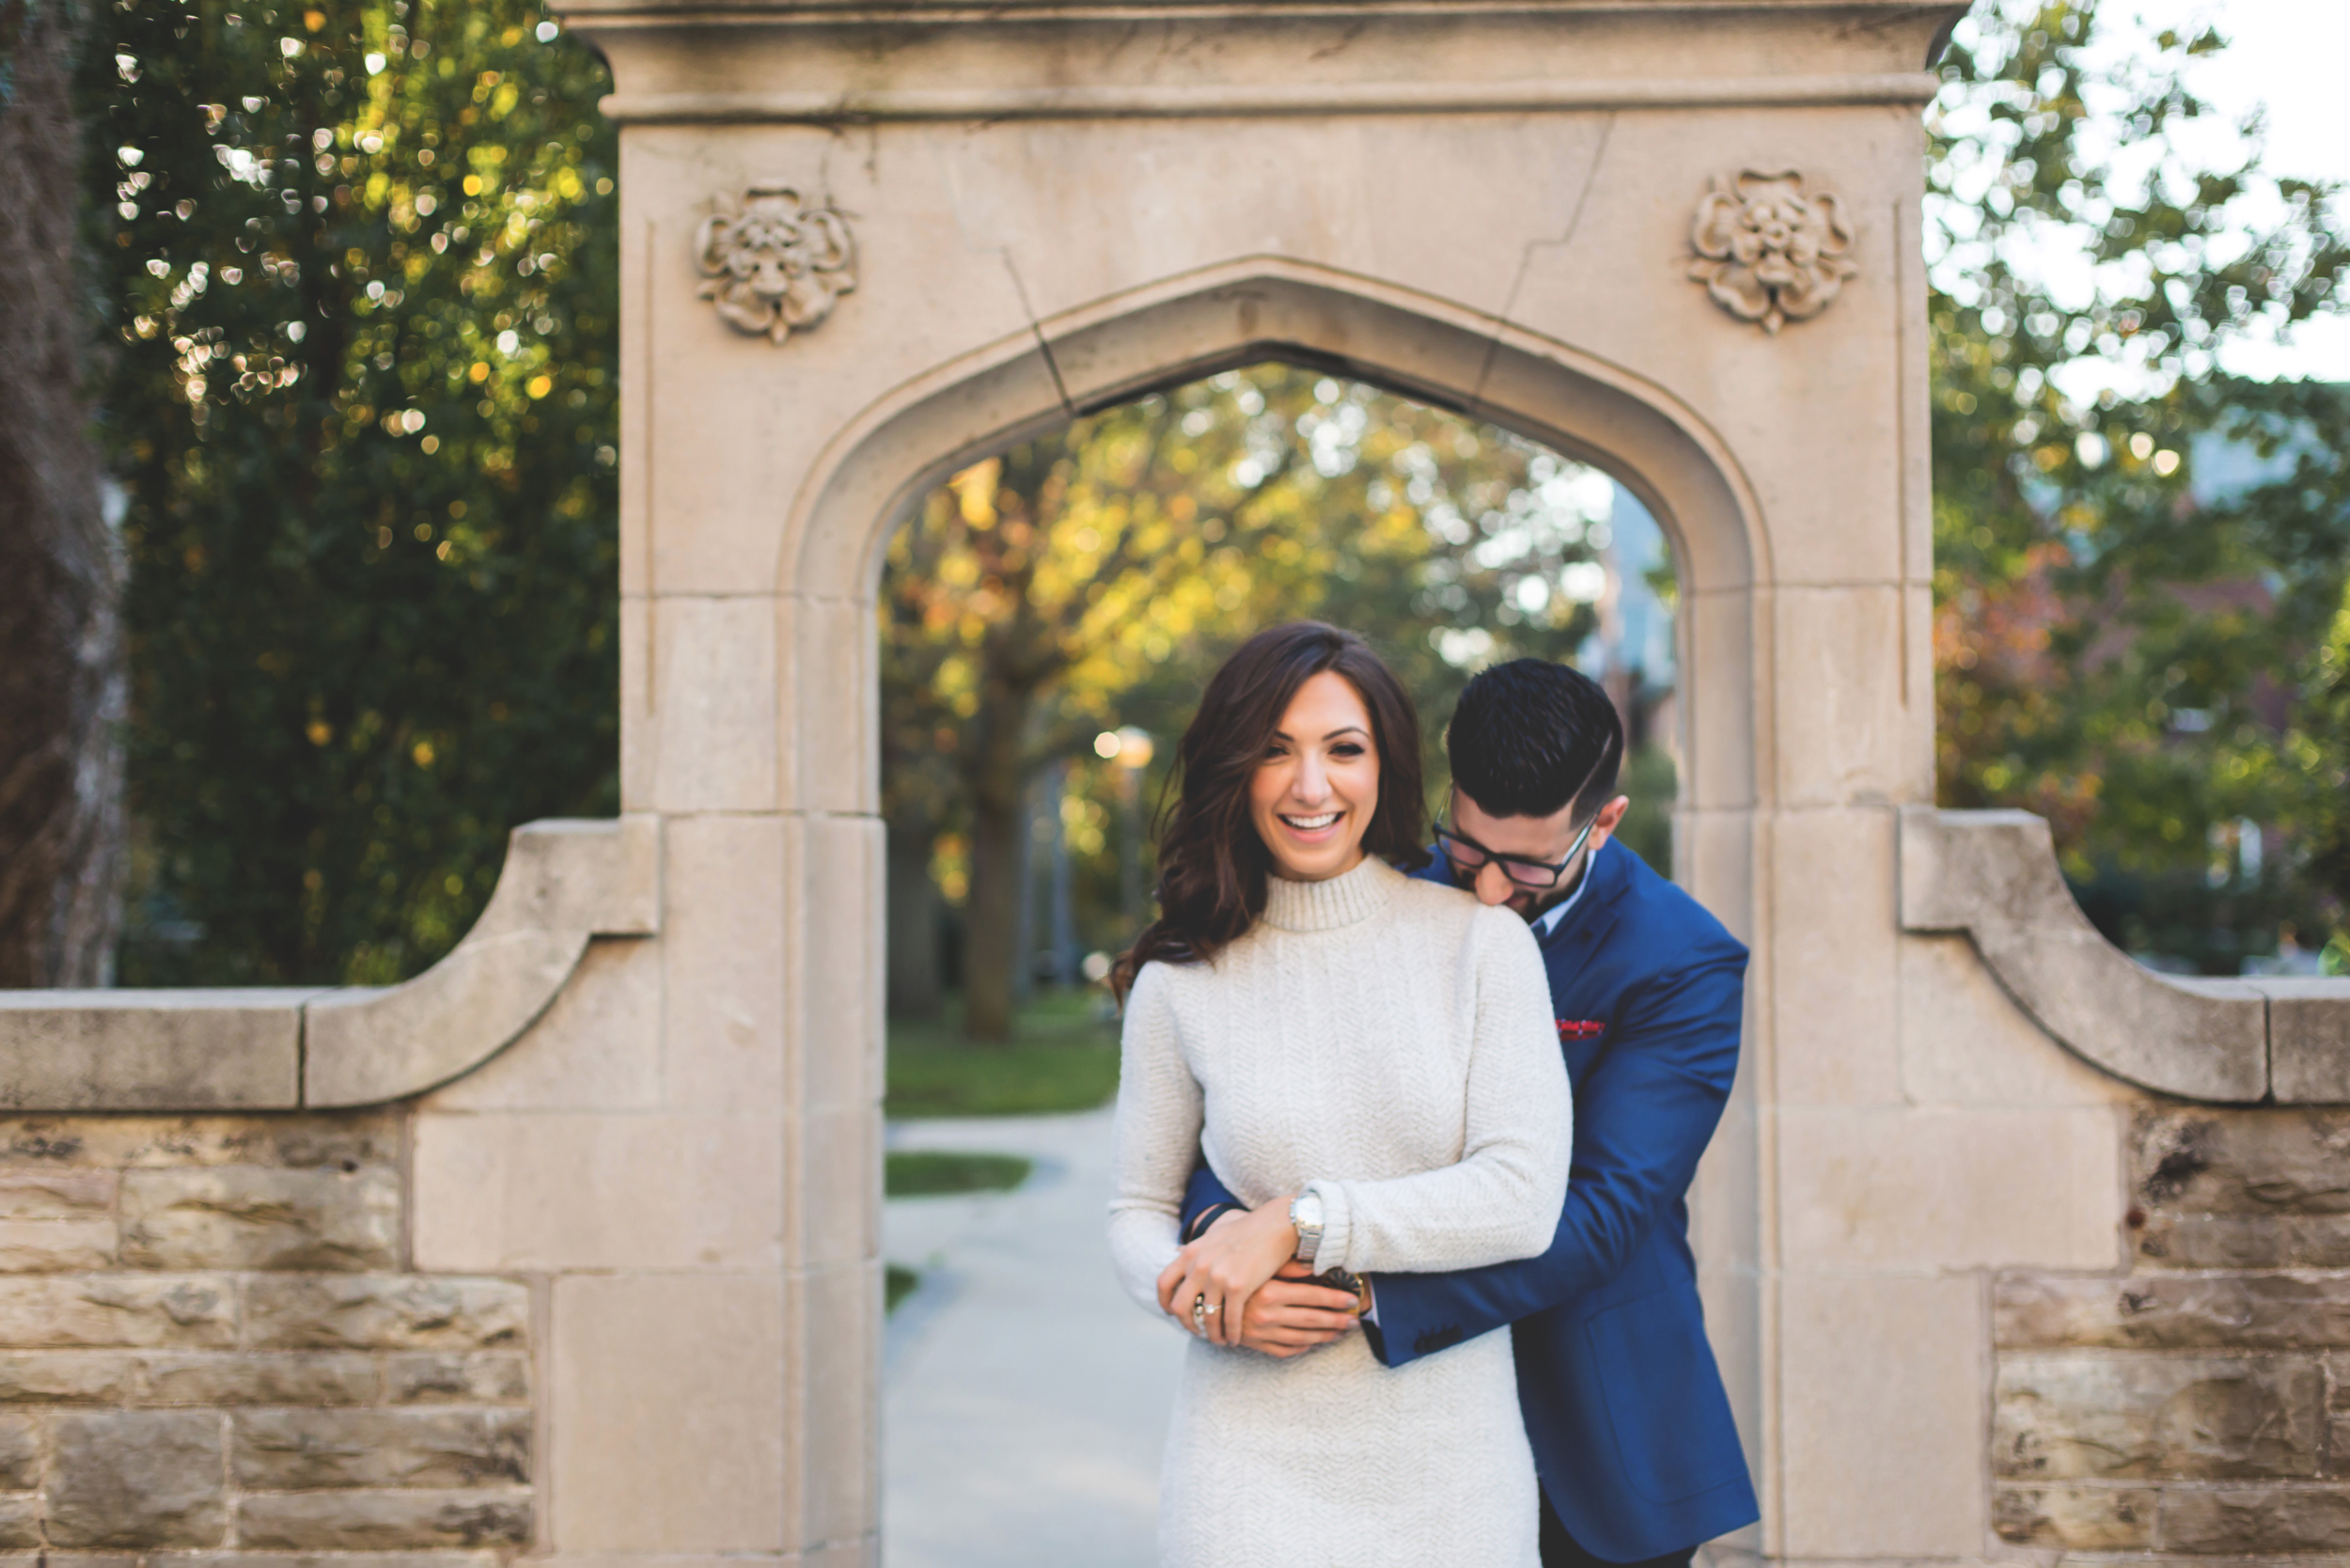 Engagement-Photography-McMaster-University-Campus-Hamilton-Burlington-Oakville-Niagara-Toronto-Wedding-Photographer-Moments-by-Lauren-Photo-Image-11.png